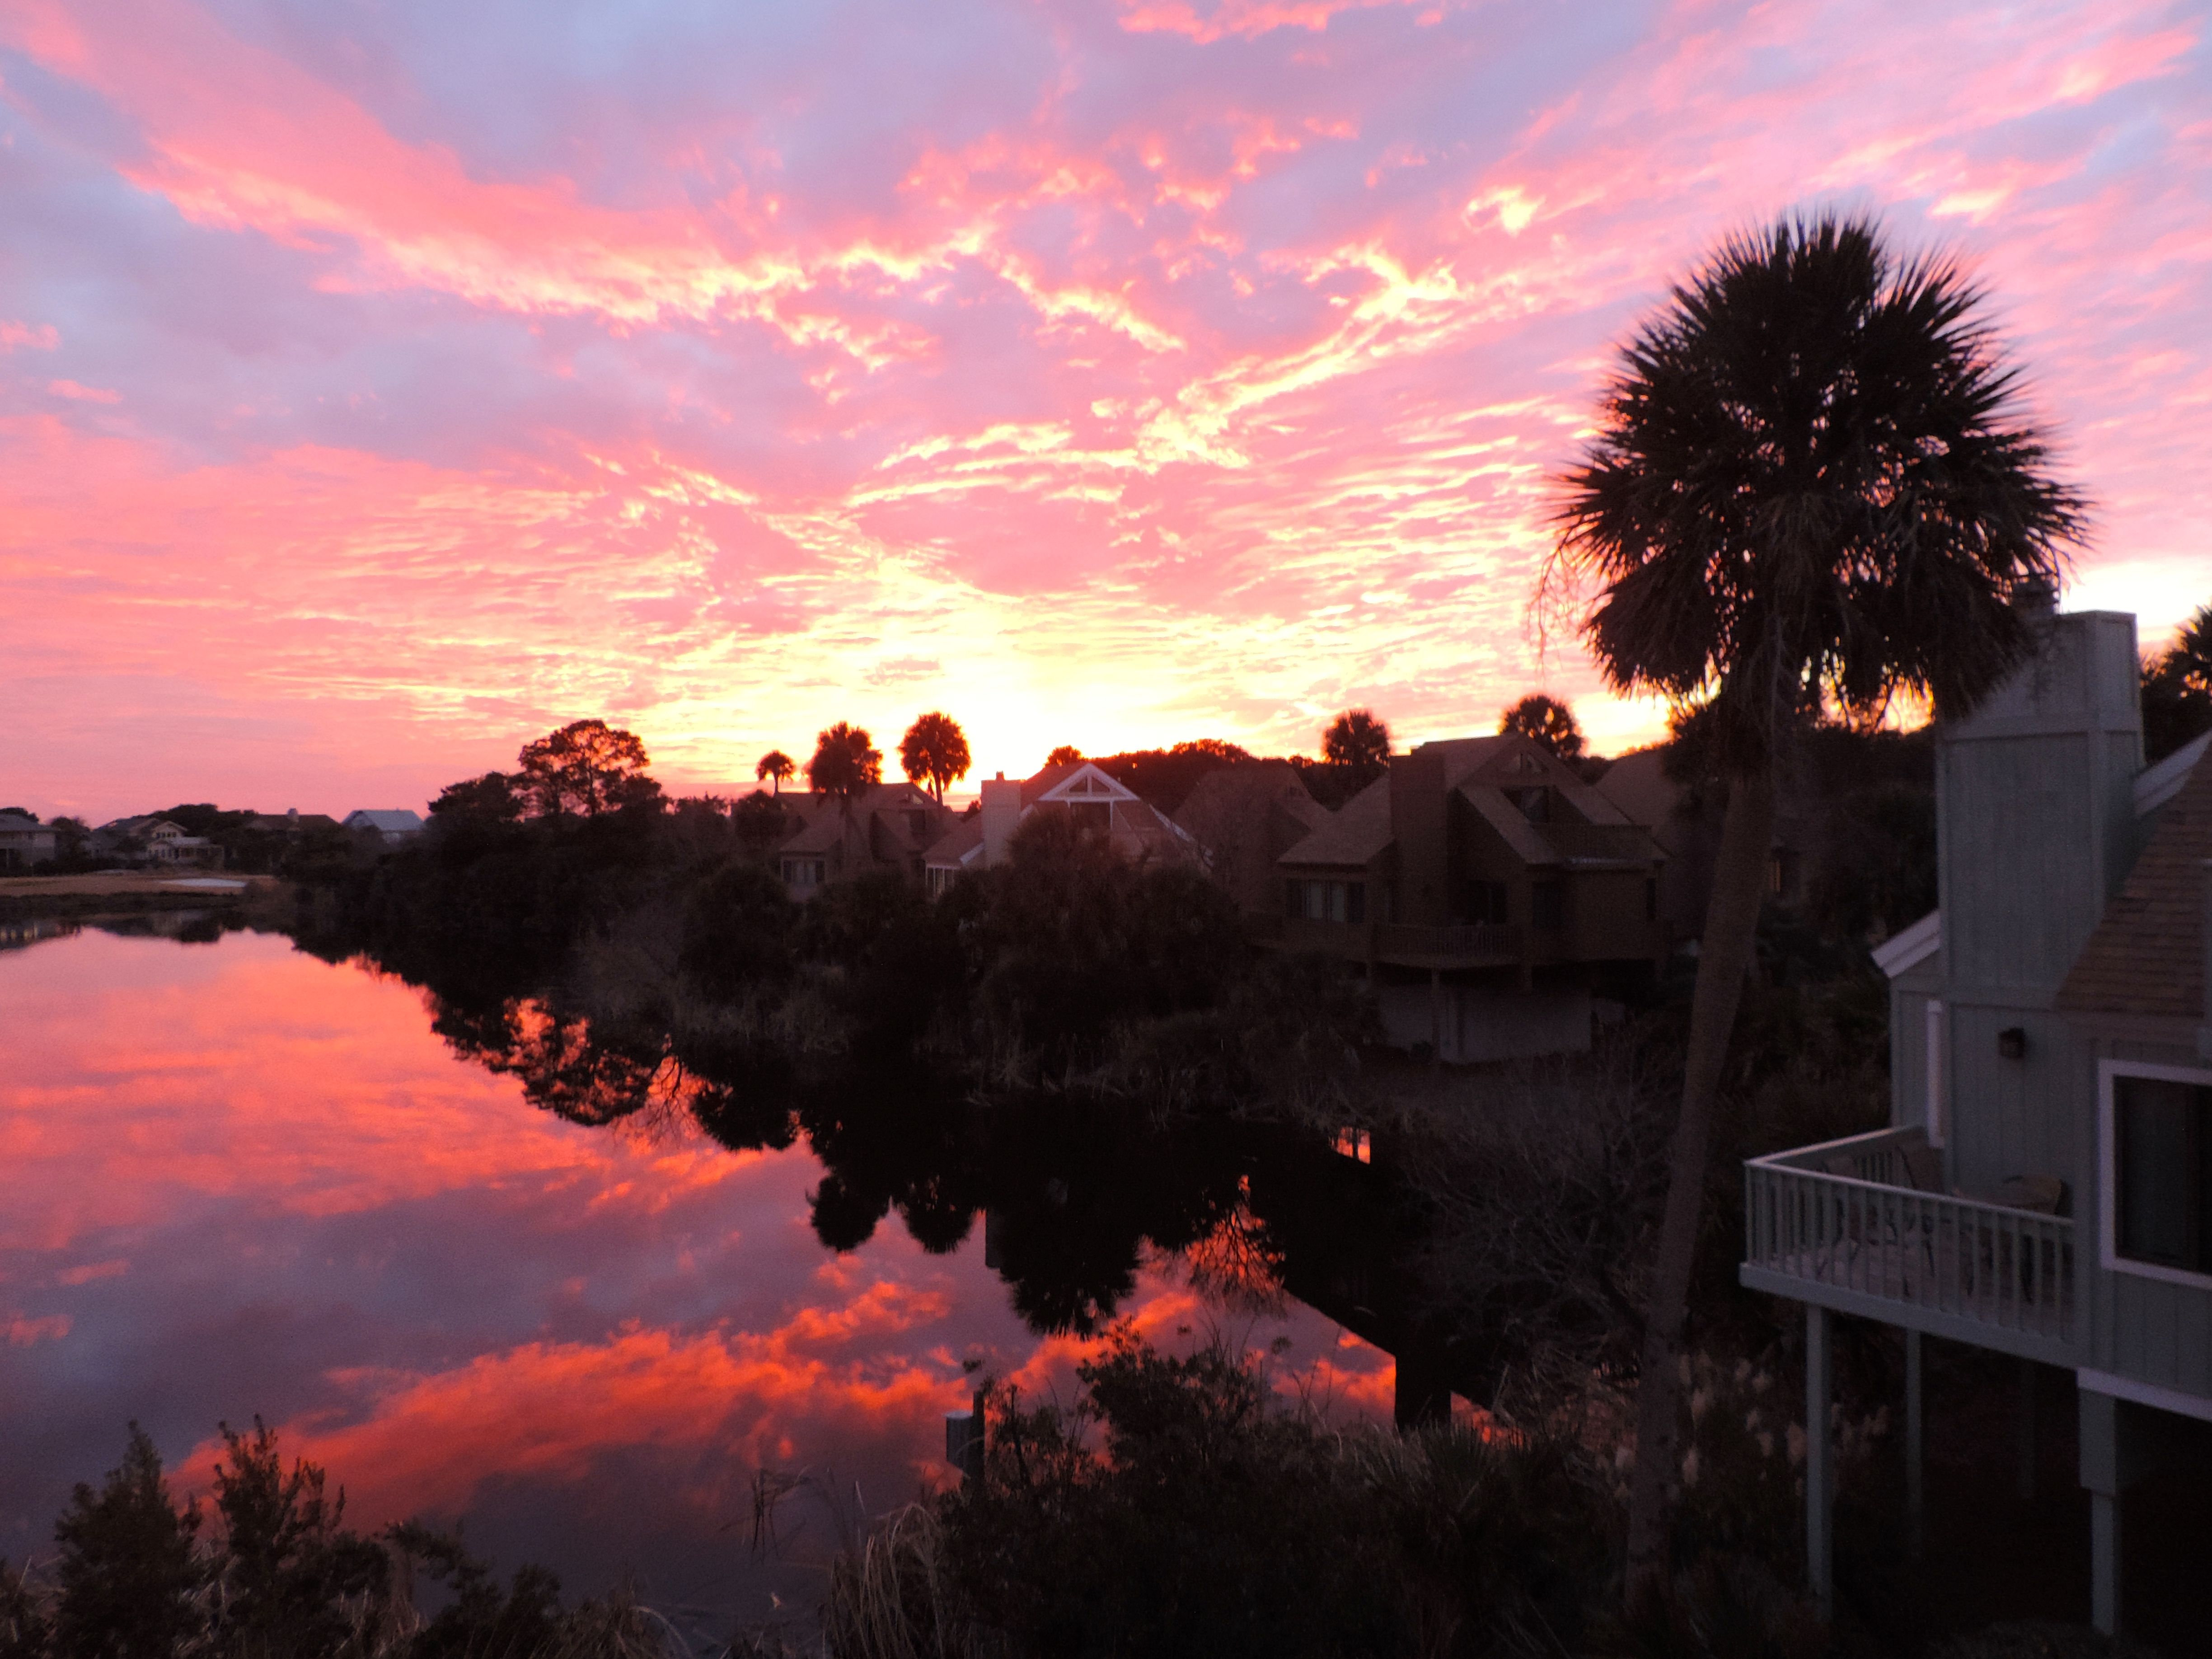 The views of the setting sun over the lagoon are spectacular.